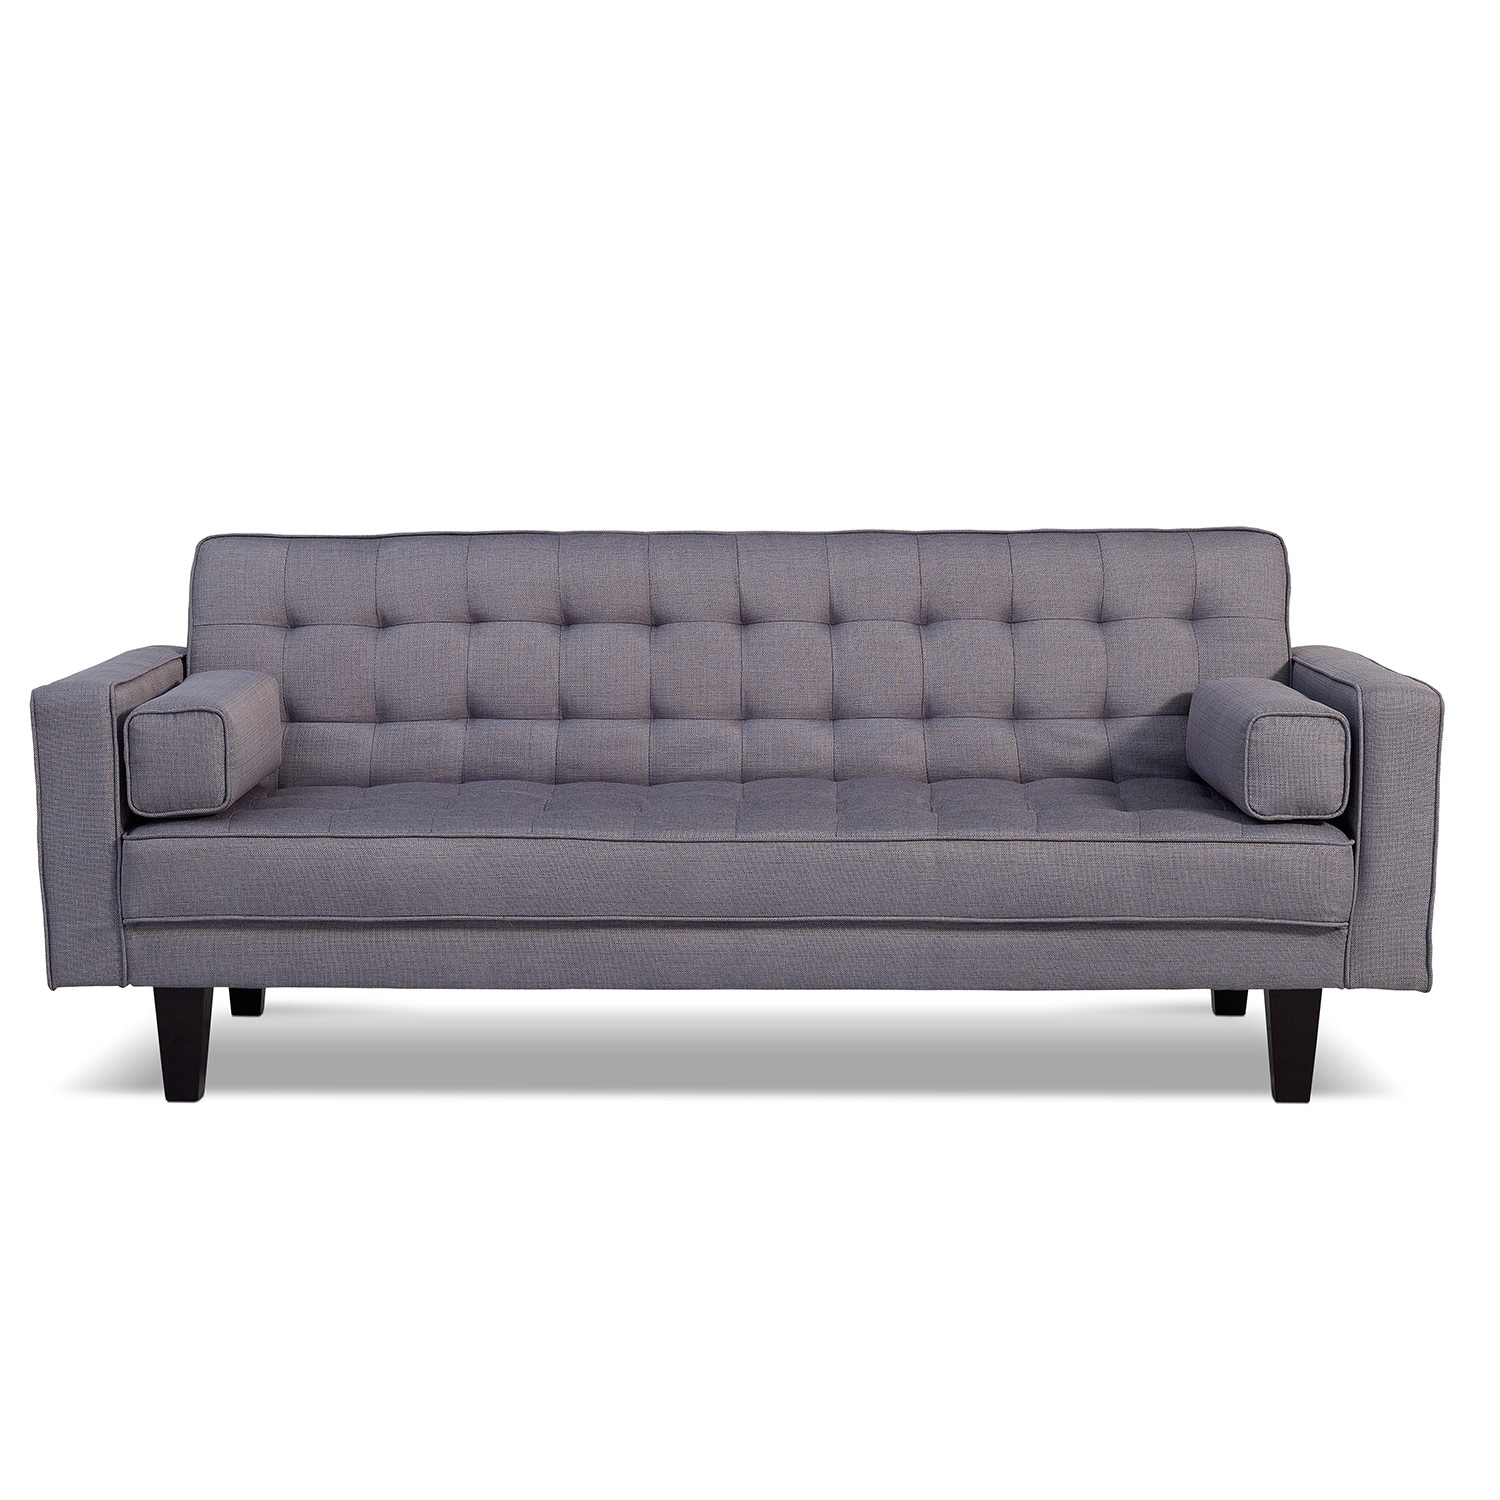 Britton Futon Sofa Bed Furniture Com